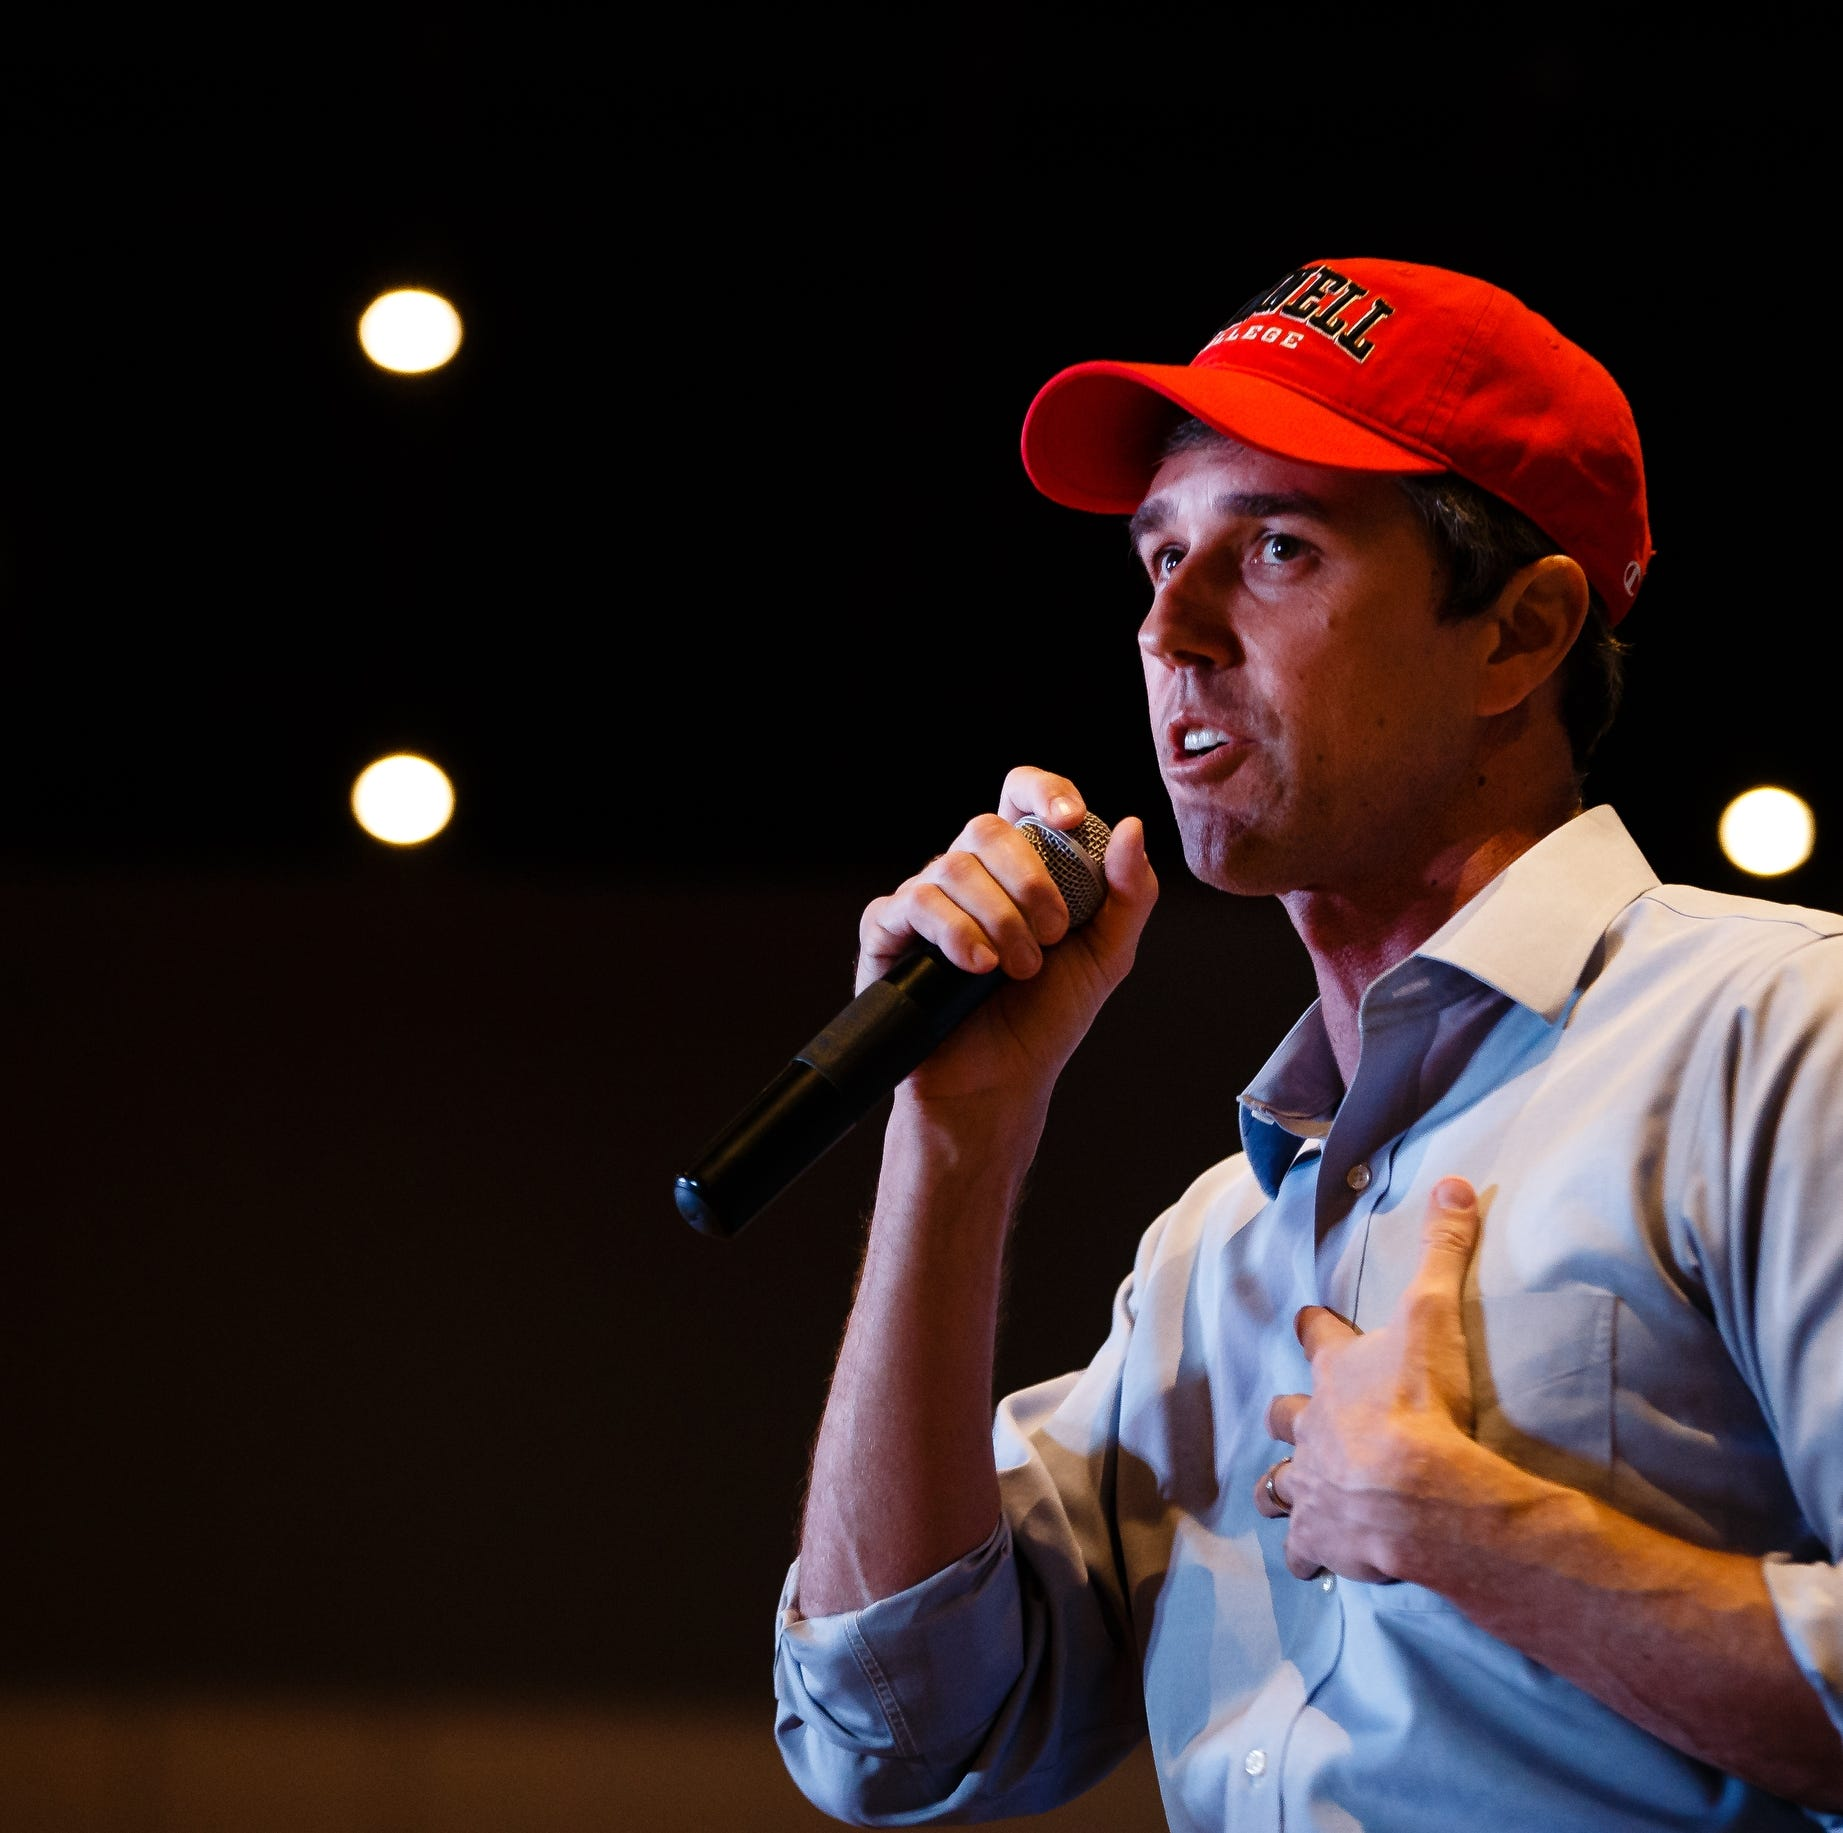 In Iowa, Beto O'Rourke says non-union members should pay union dues